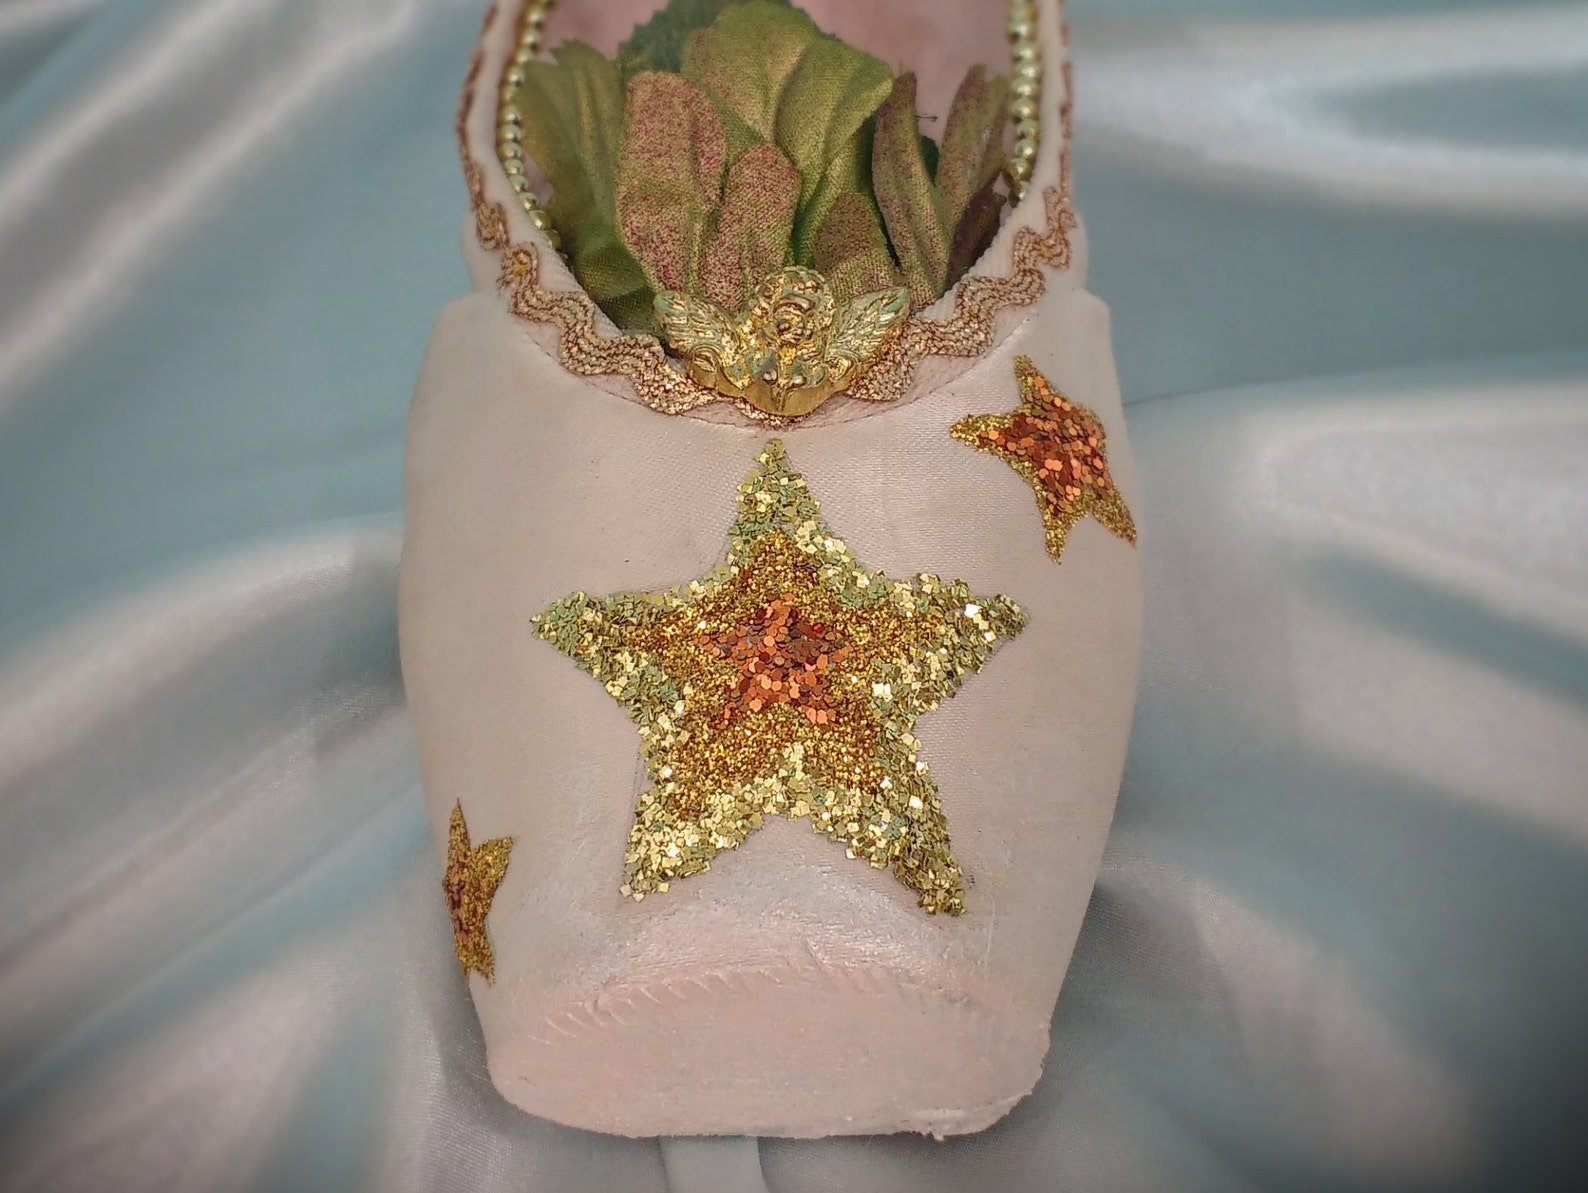 gold star dancer gift, gold ballet gift, unique gift, unique gold gift, goddess of dance glitter star, ballet gift, decorated po